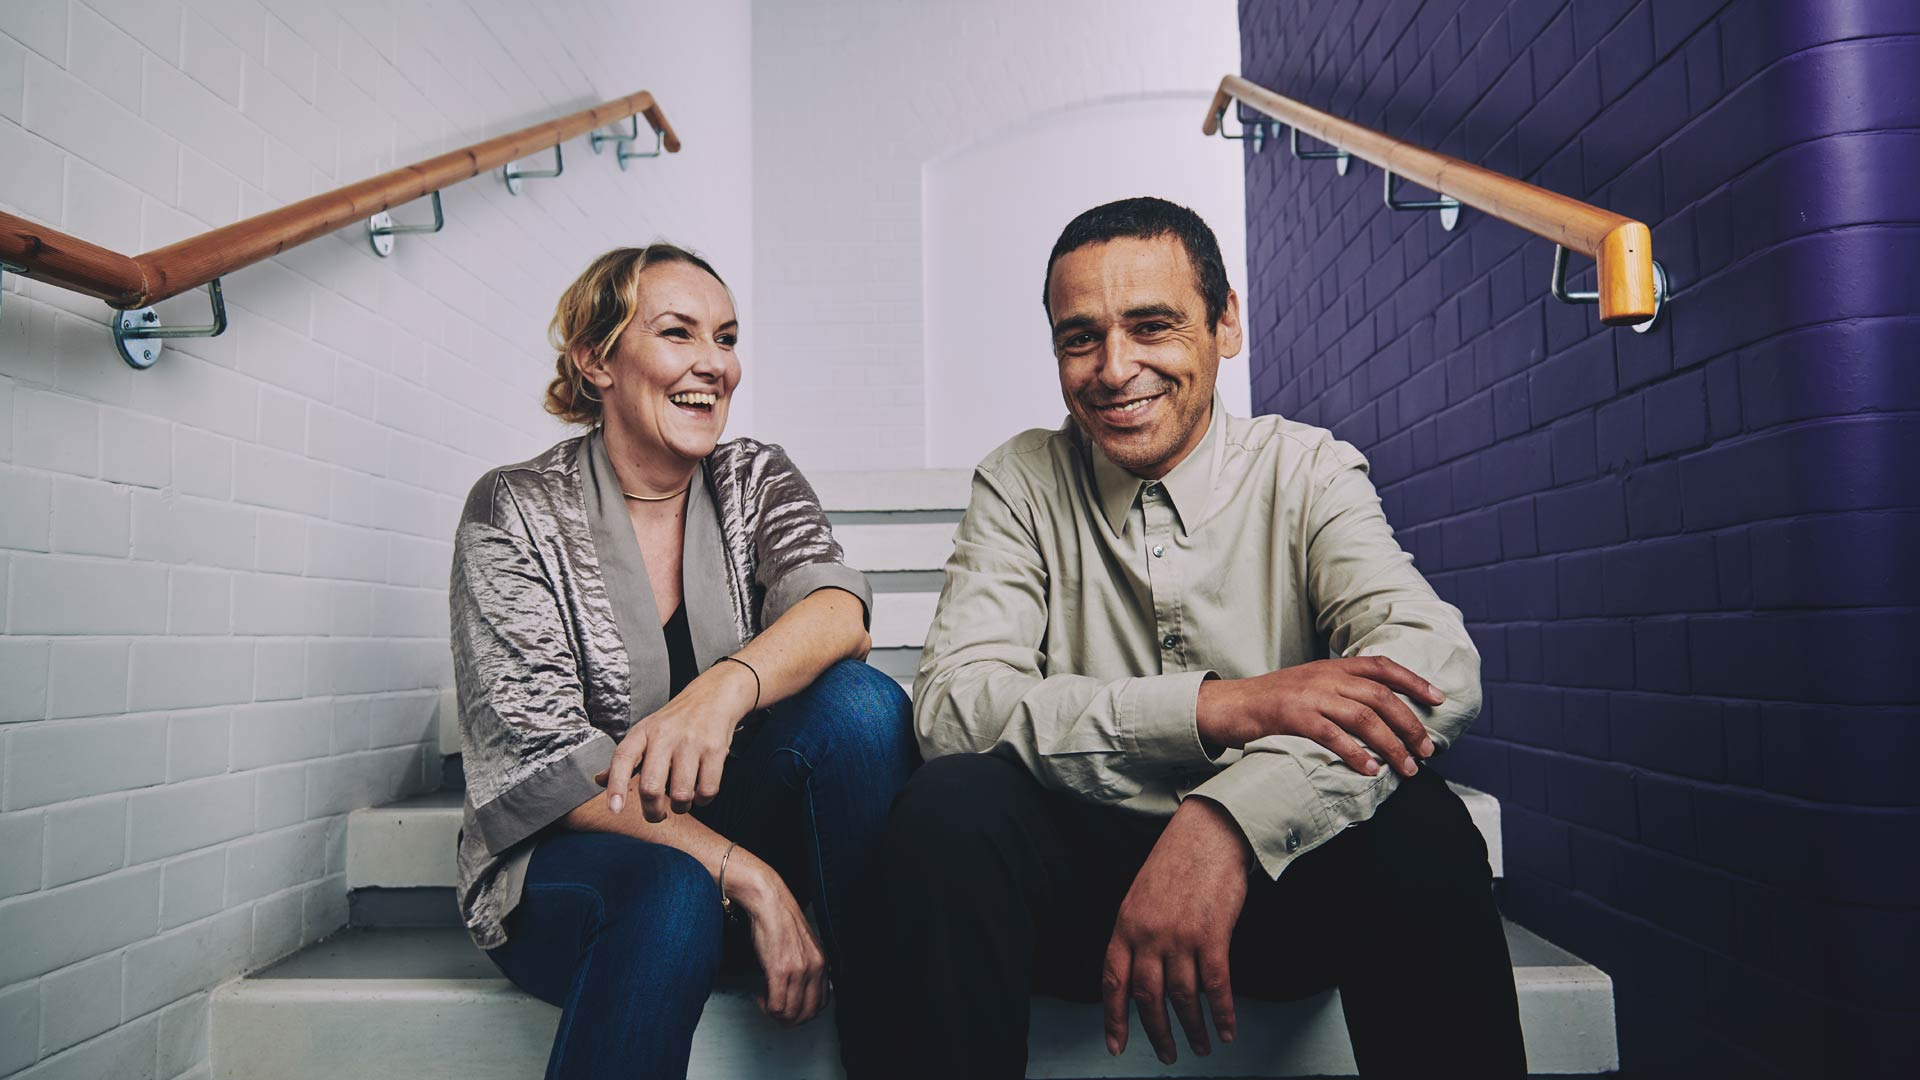 a woman and a man sitting on the stairs laughing